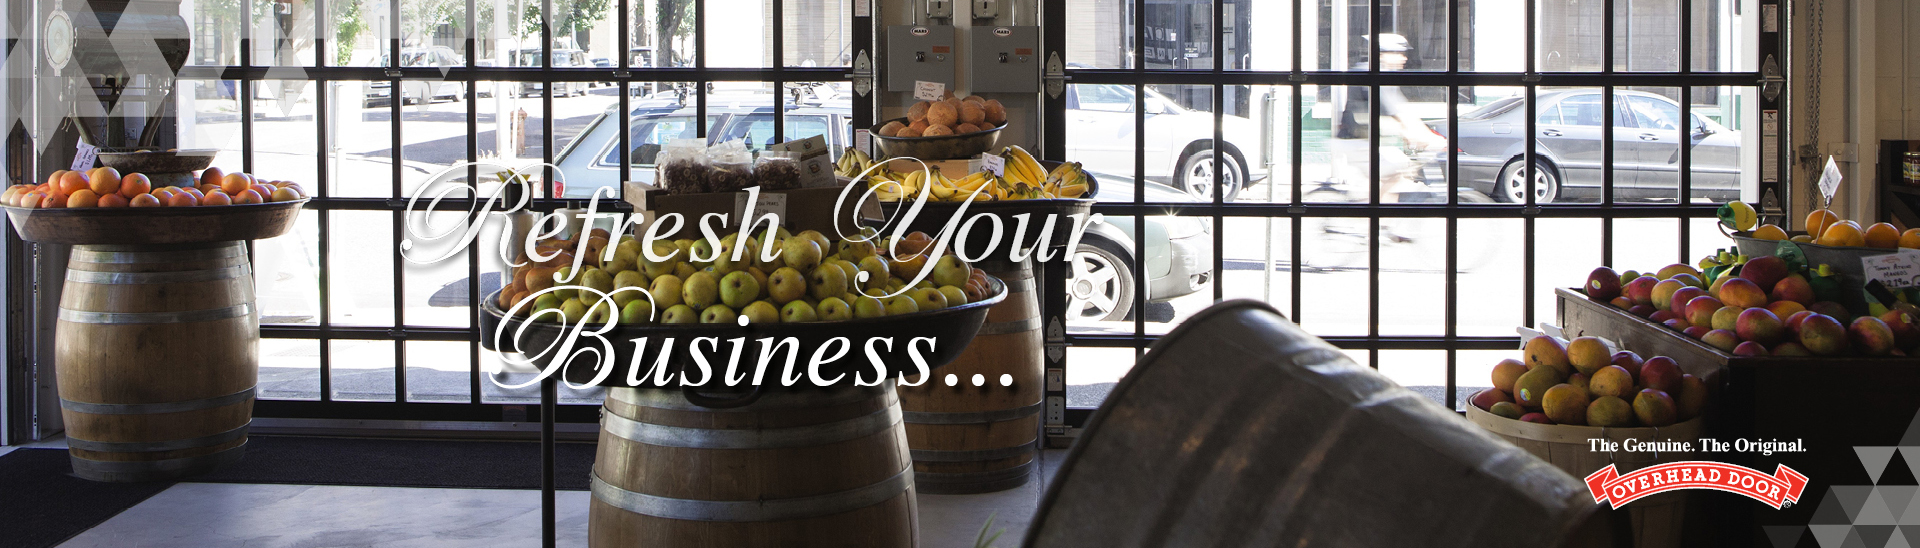 Refresh your business